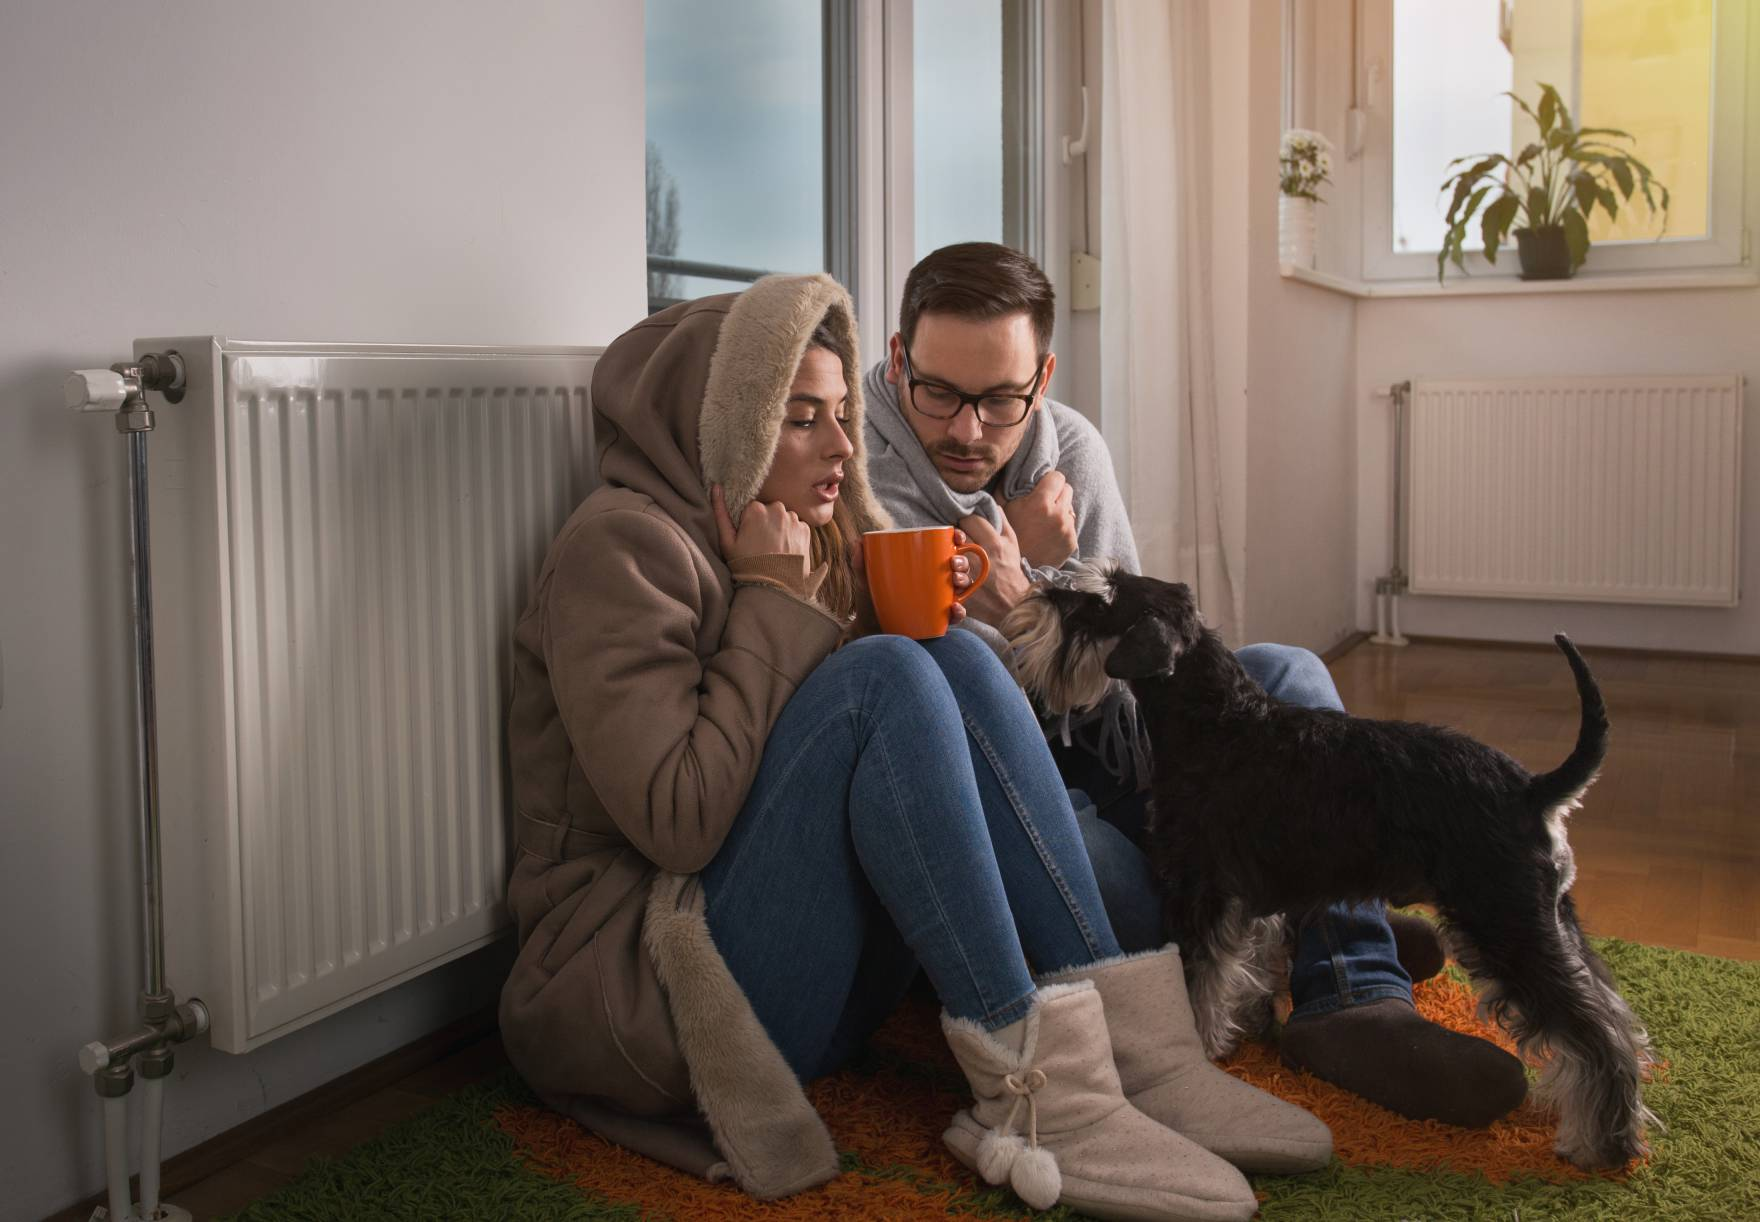 Family keeping warm in cold home